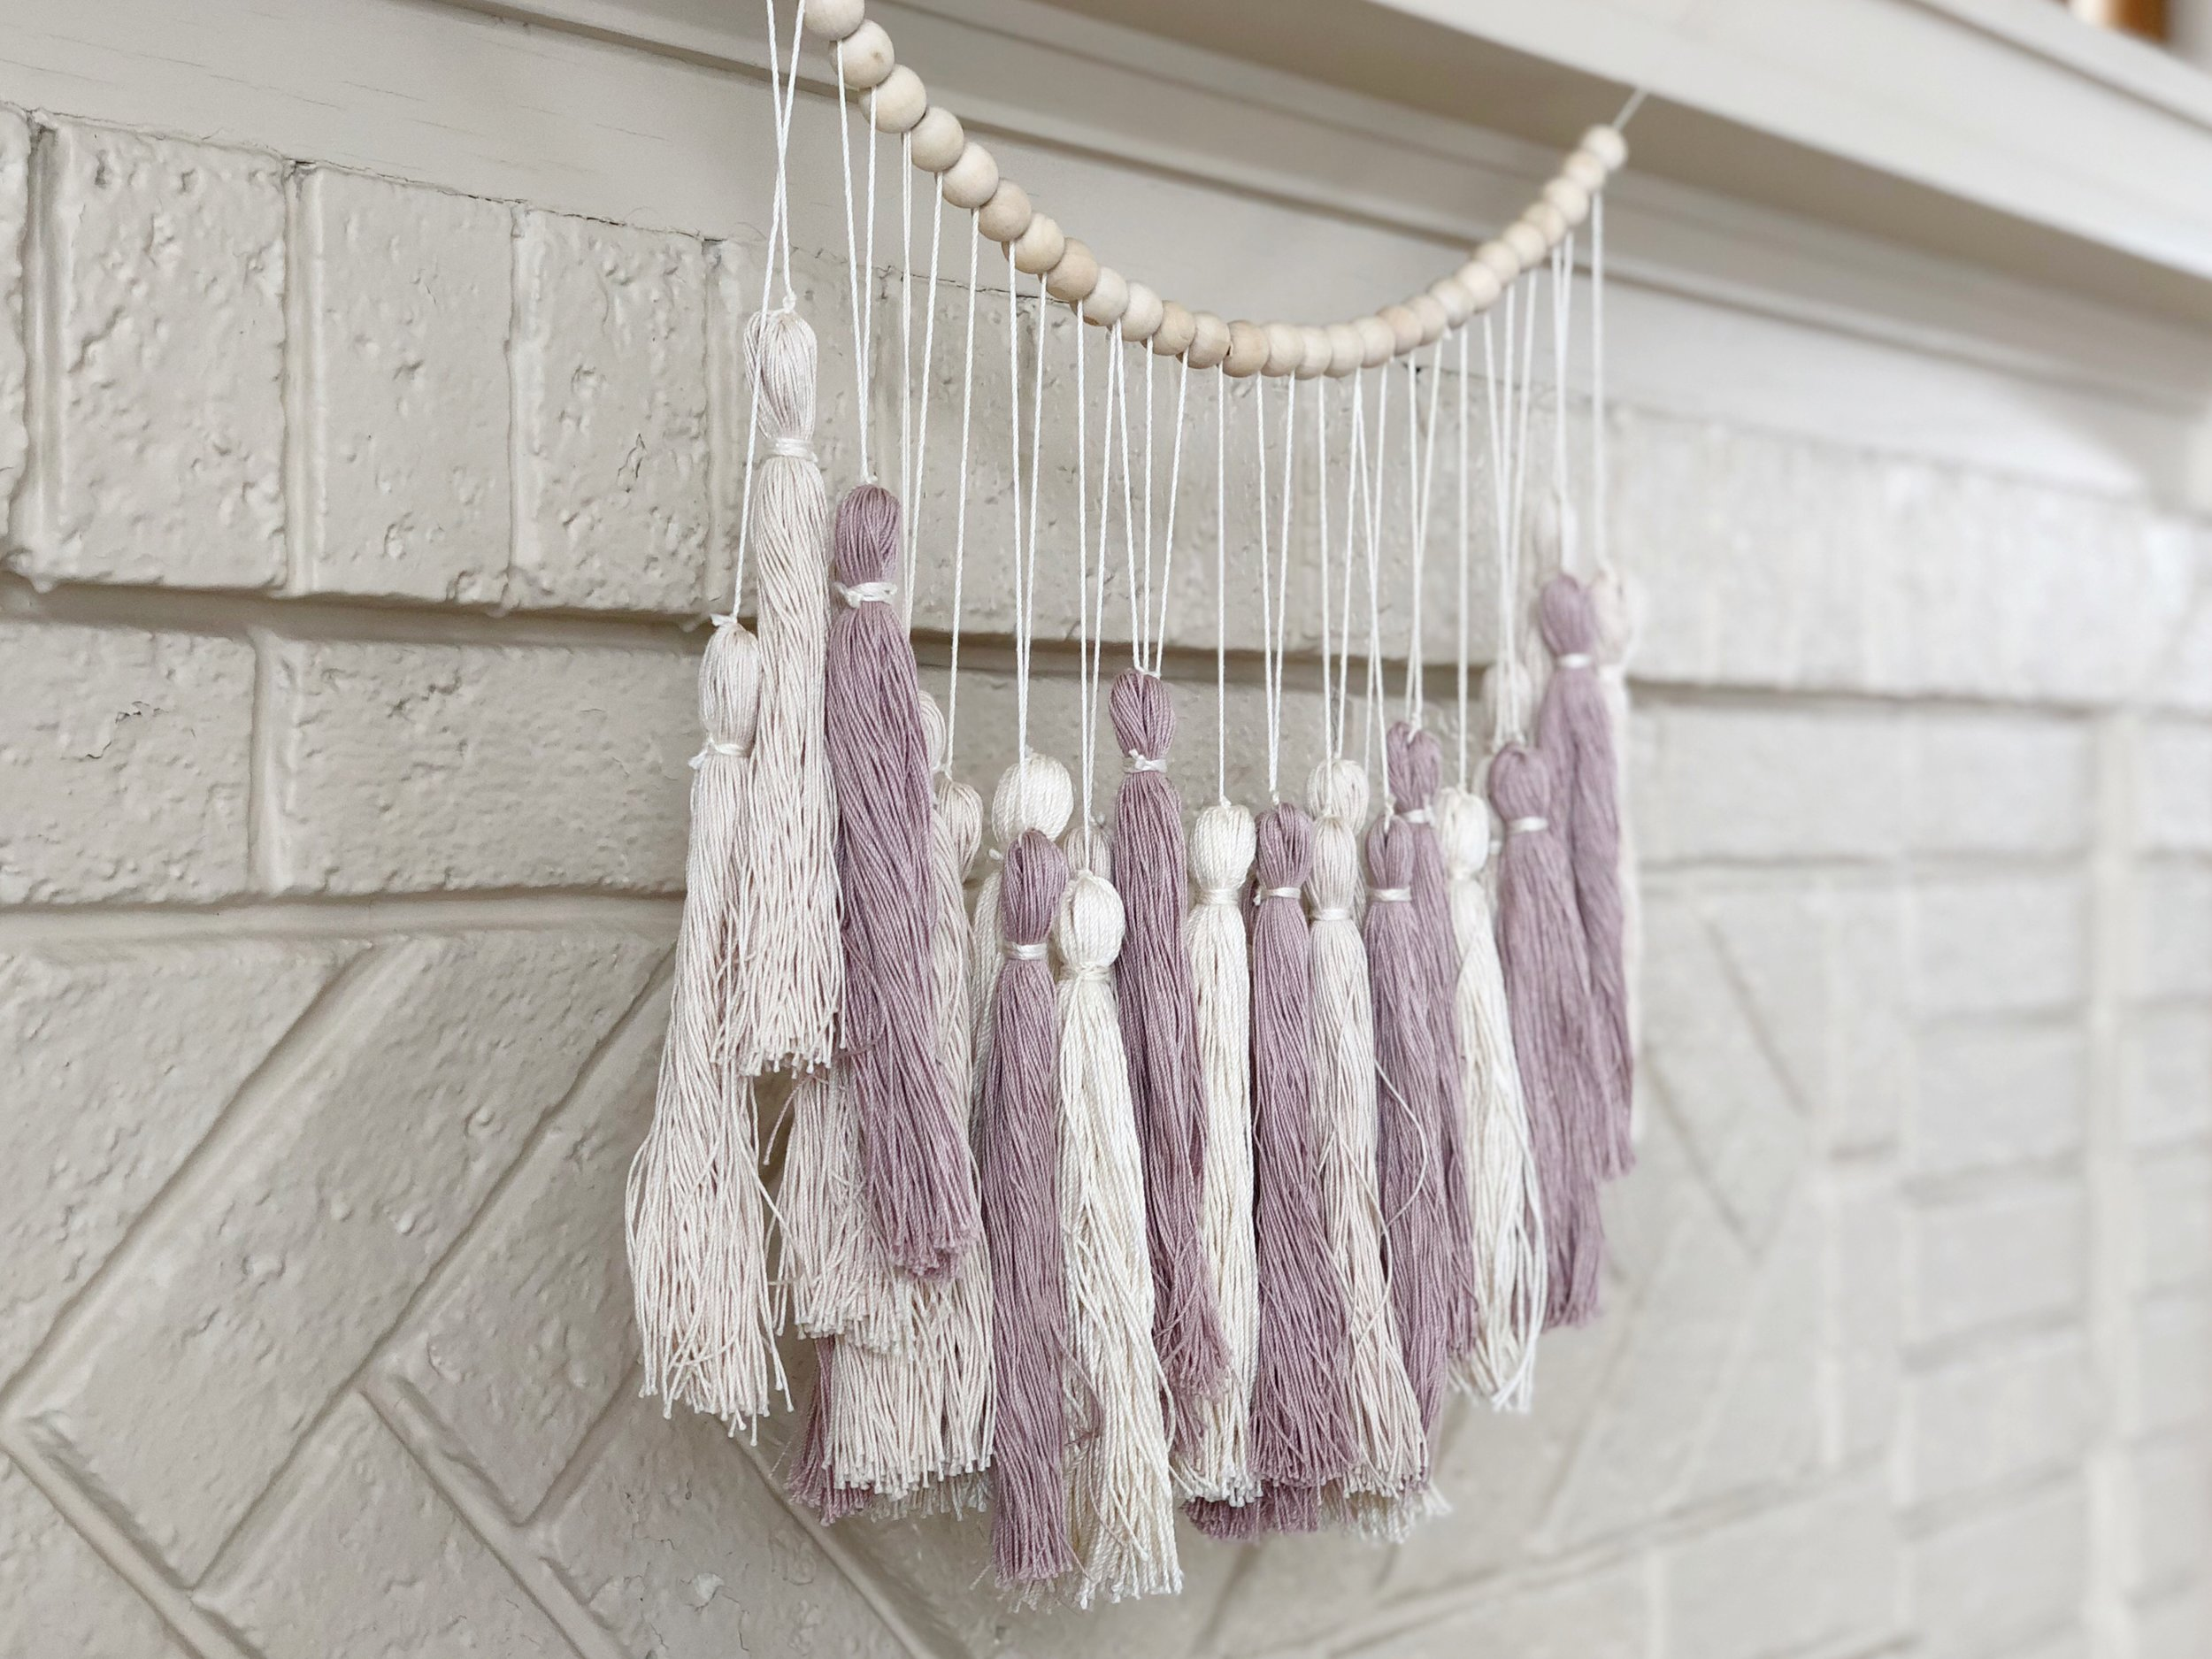 Pottery Barn Hack: DIY Tassel Garland (and save $60!!)